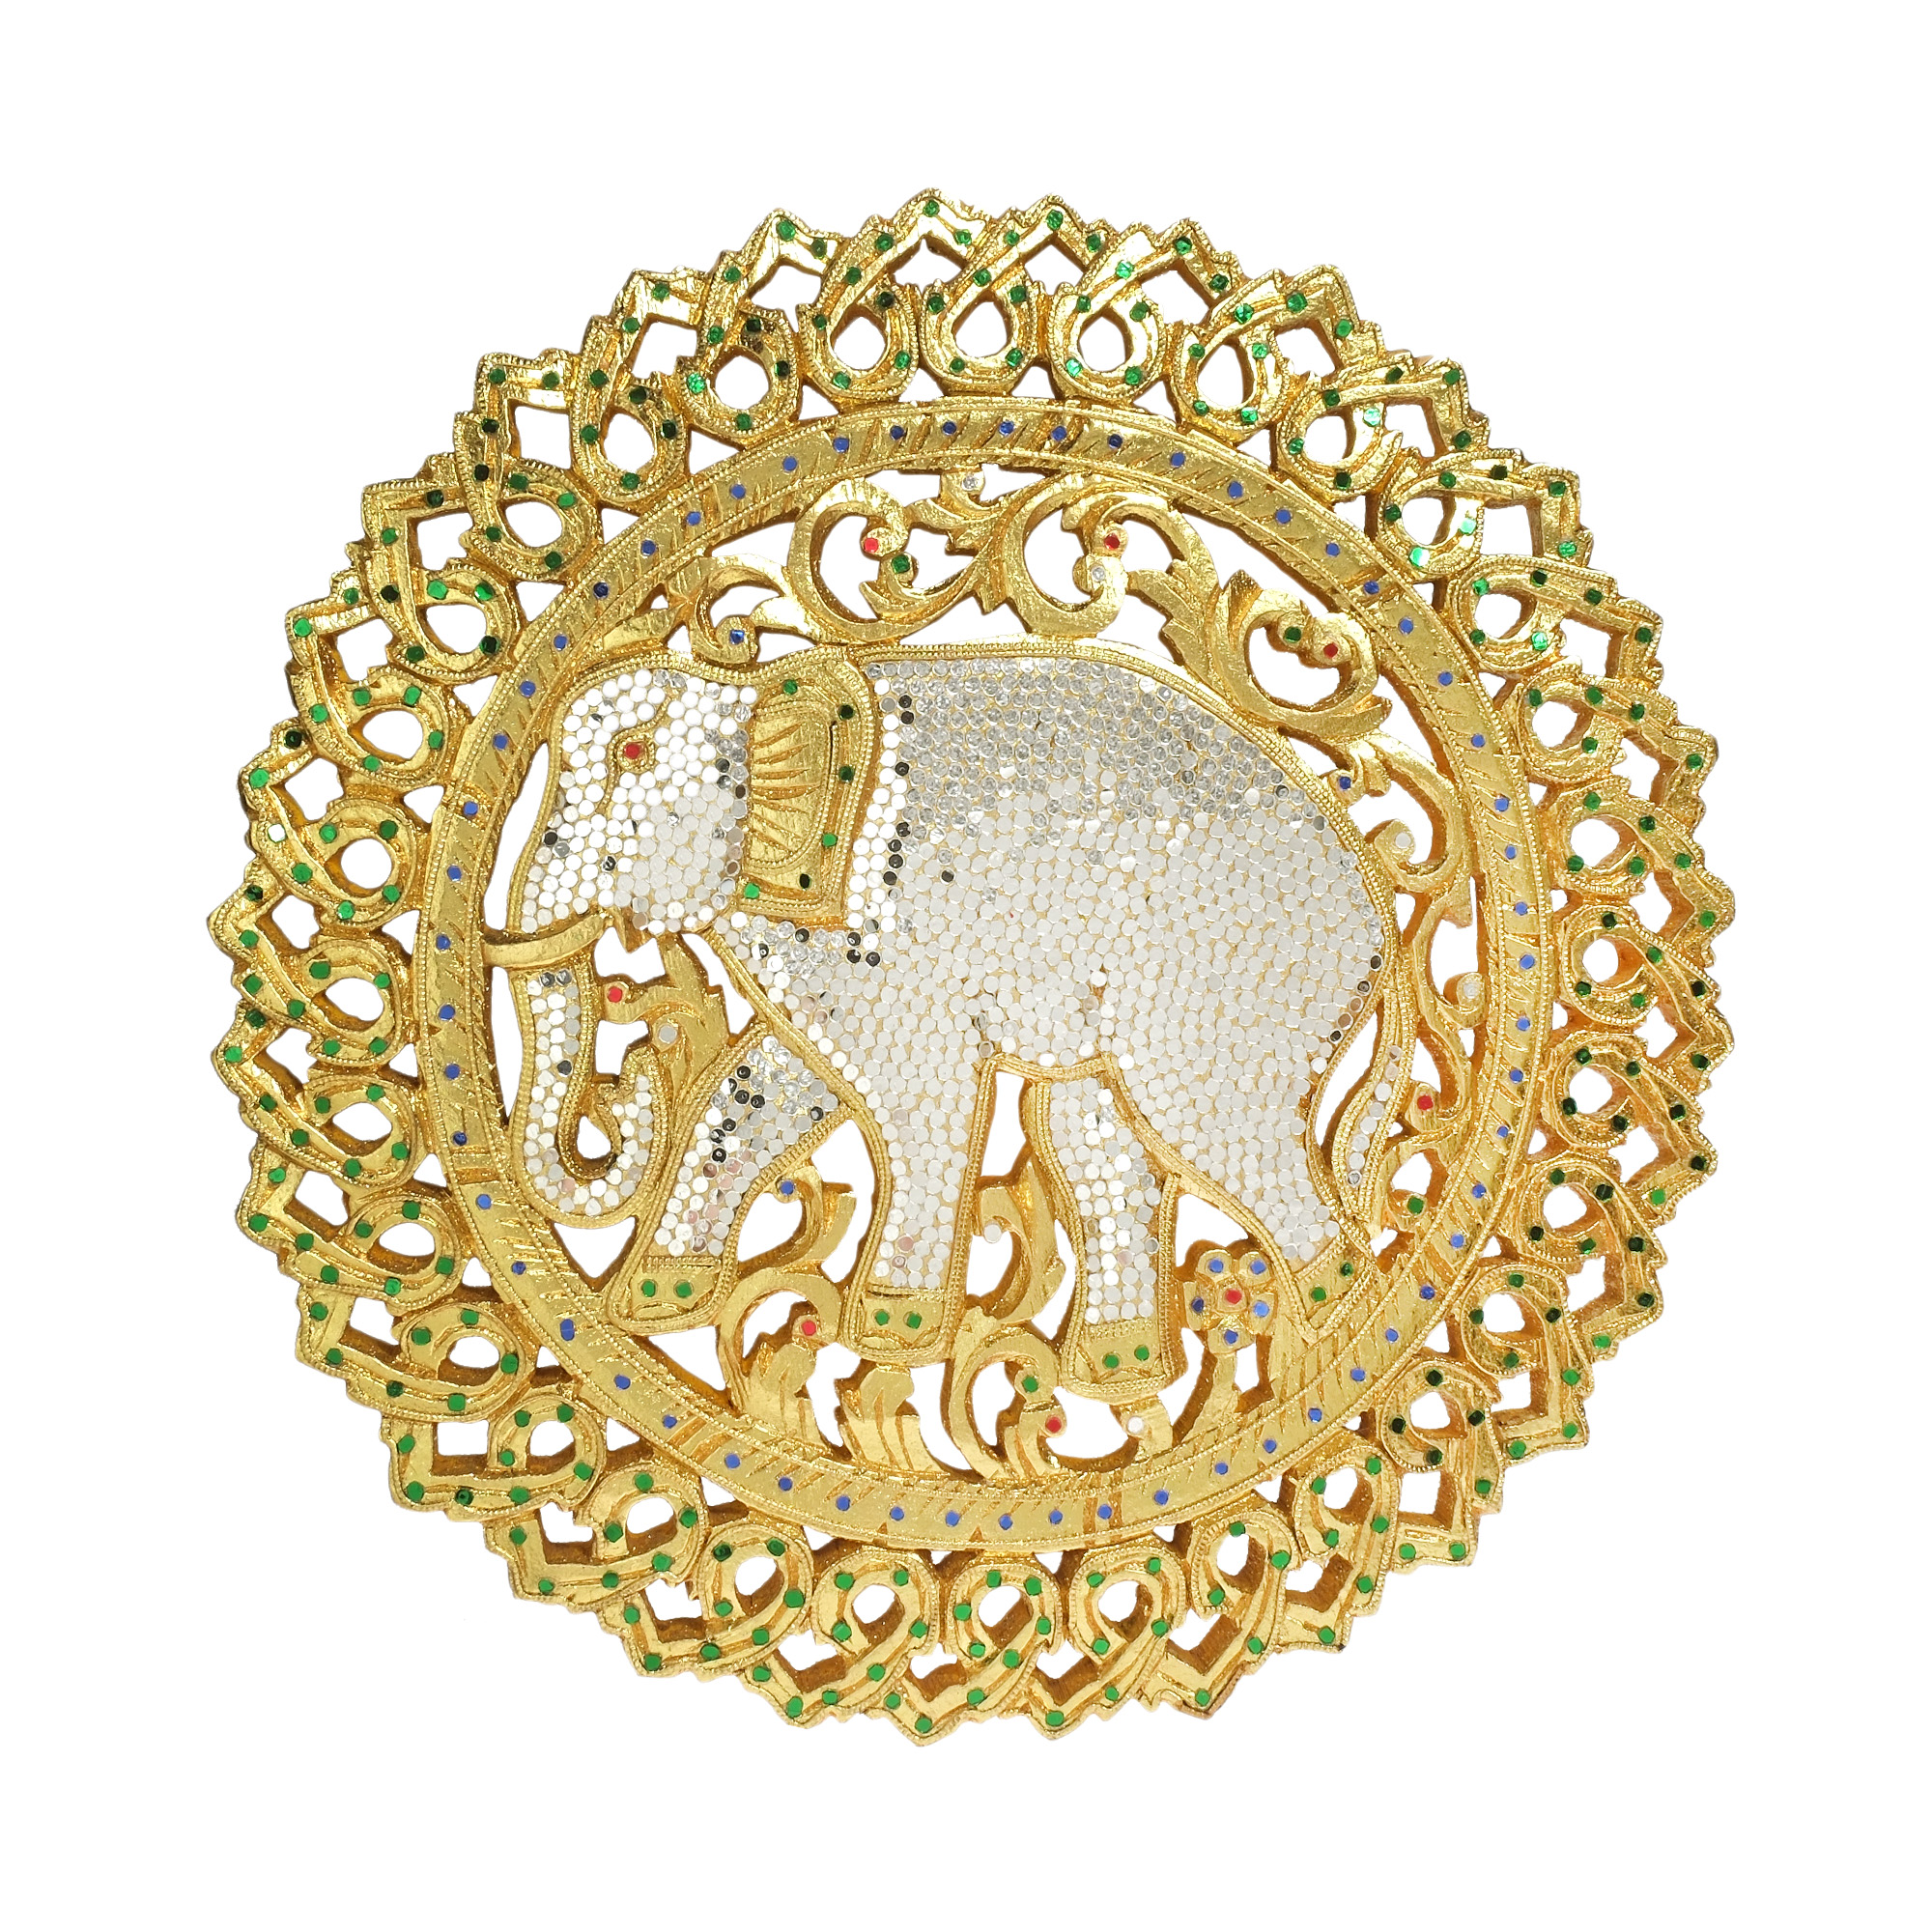 The Grand Elephant Gilded 24k Gold Hand Carved Wood Wall Art - AeraVida